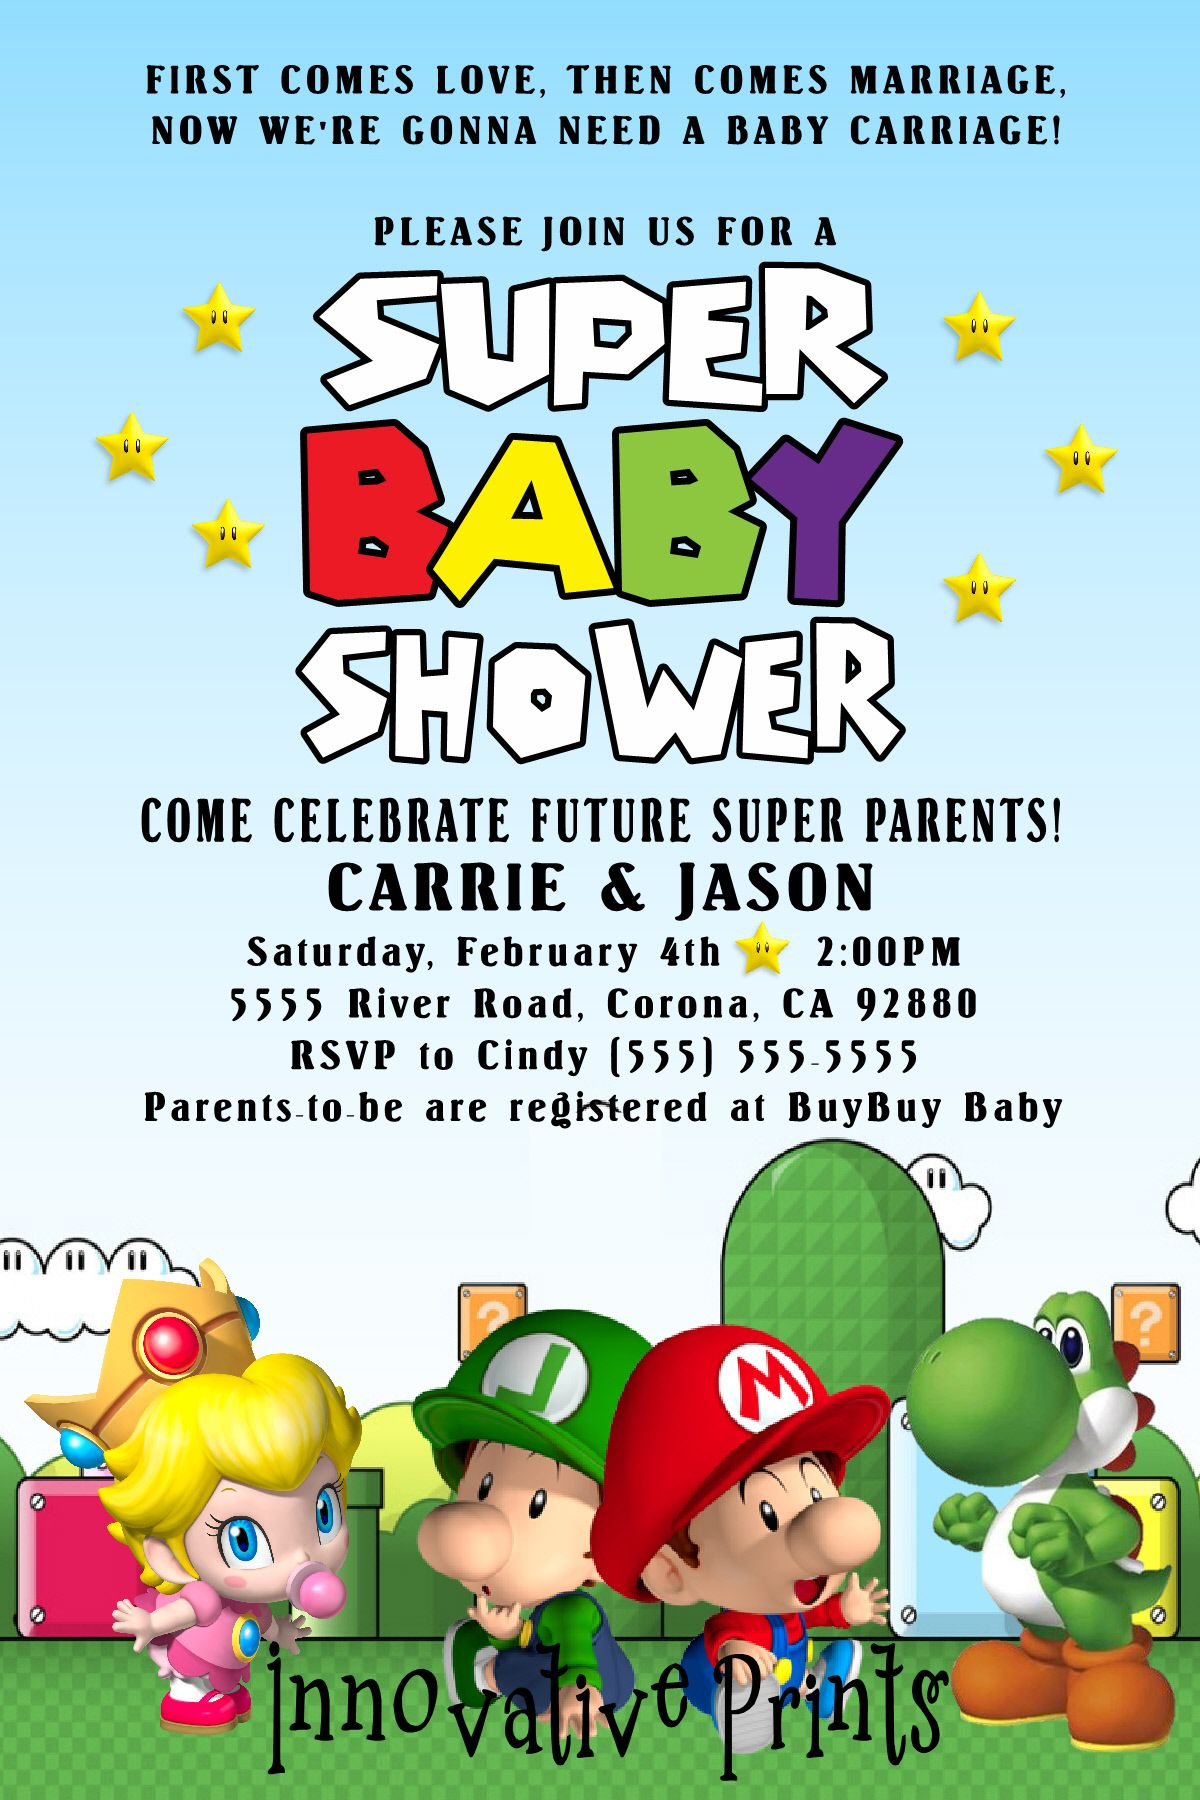 Super Mario Baby Shower Invitation To Place Orders And Follow Me On